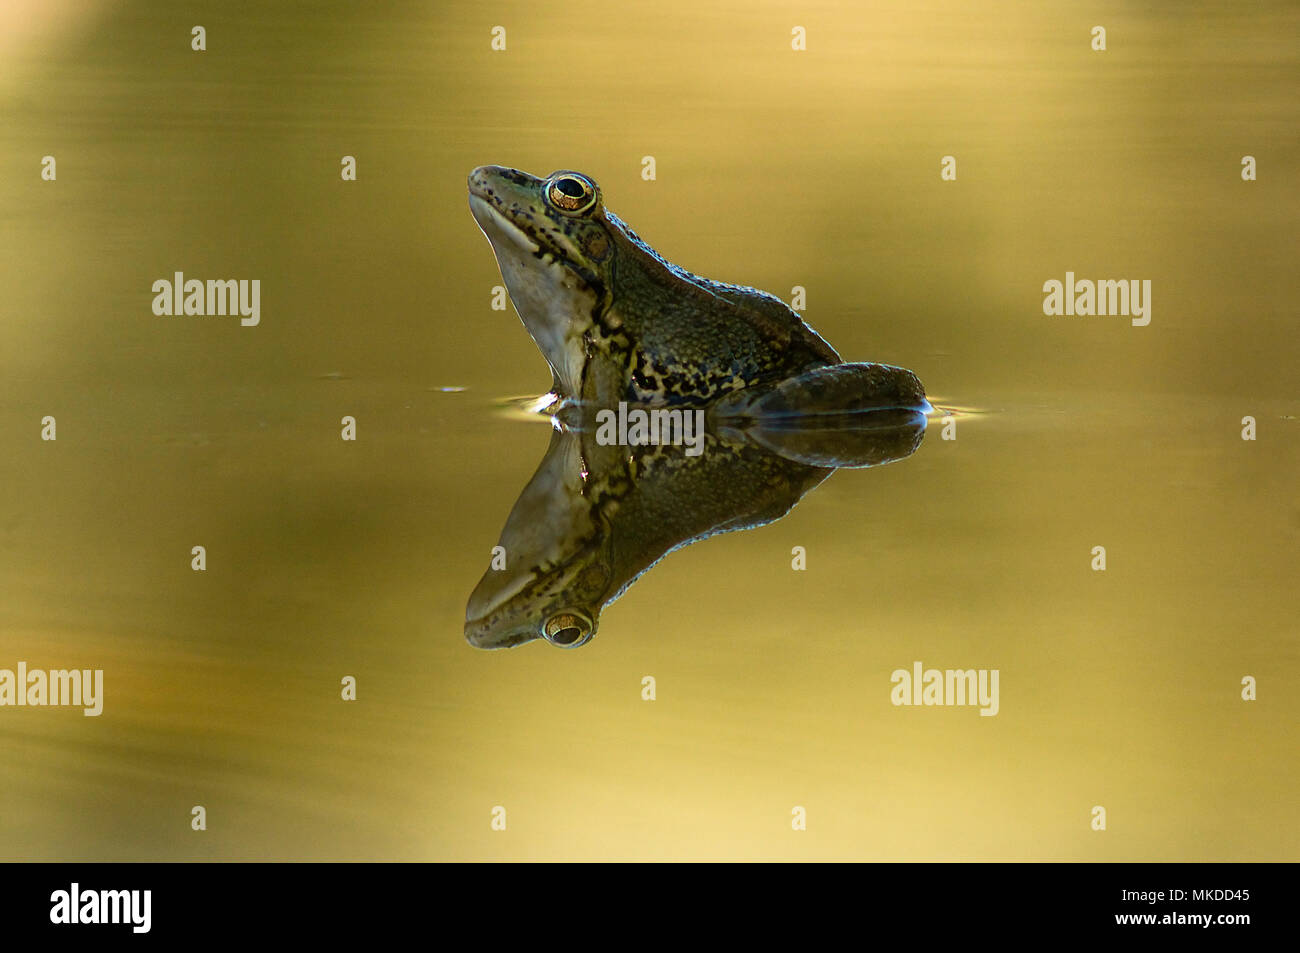 Common Frog (Pelophylax perezi) hunting. Huesca, Spain - Stock Image